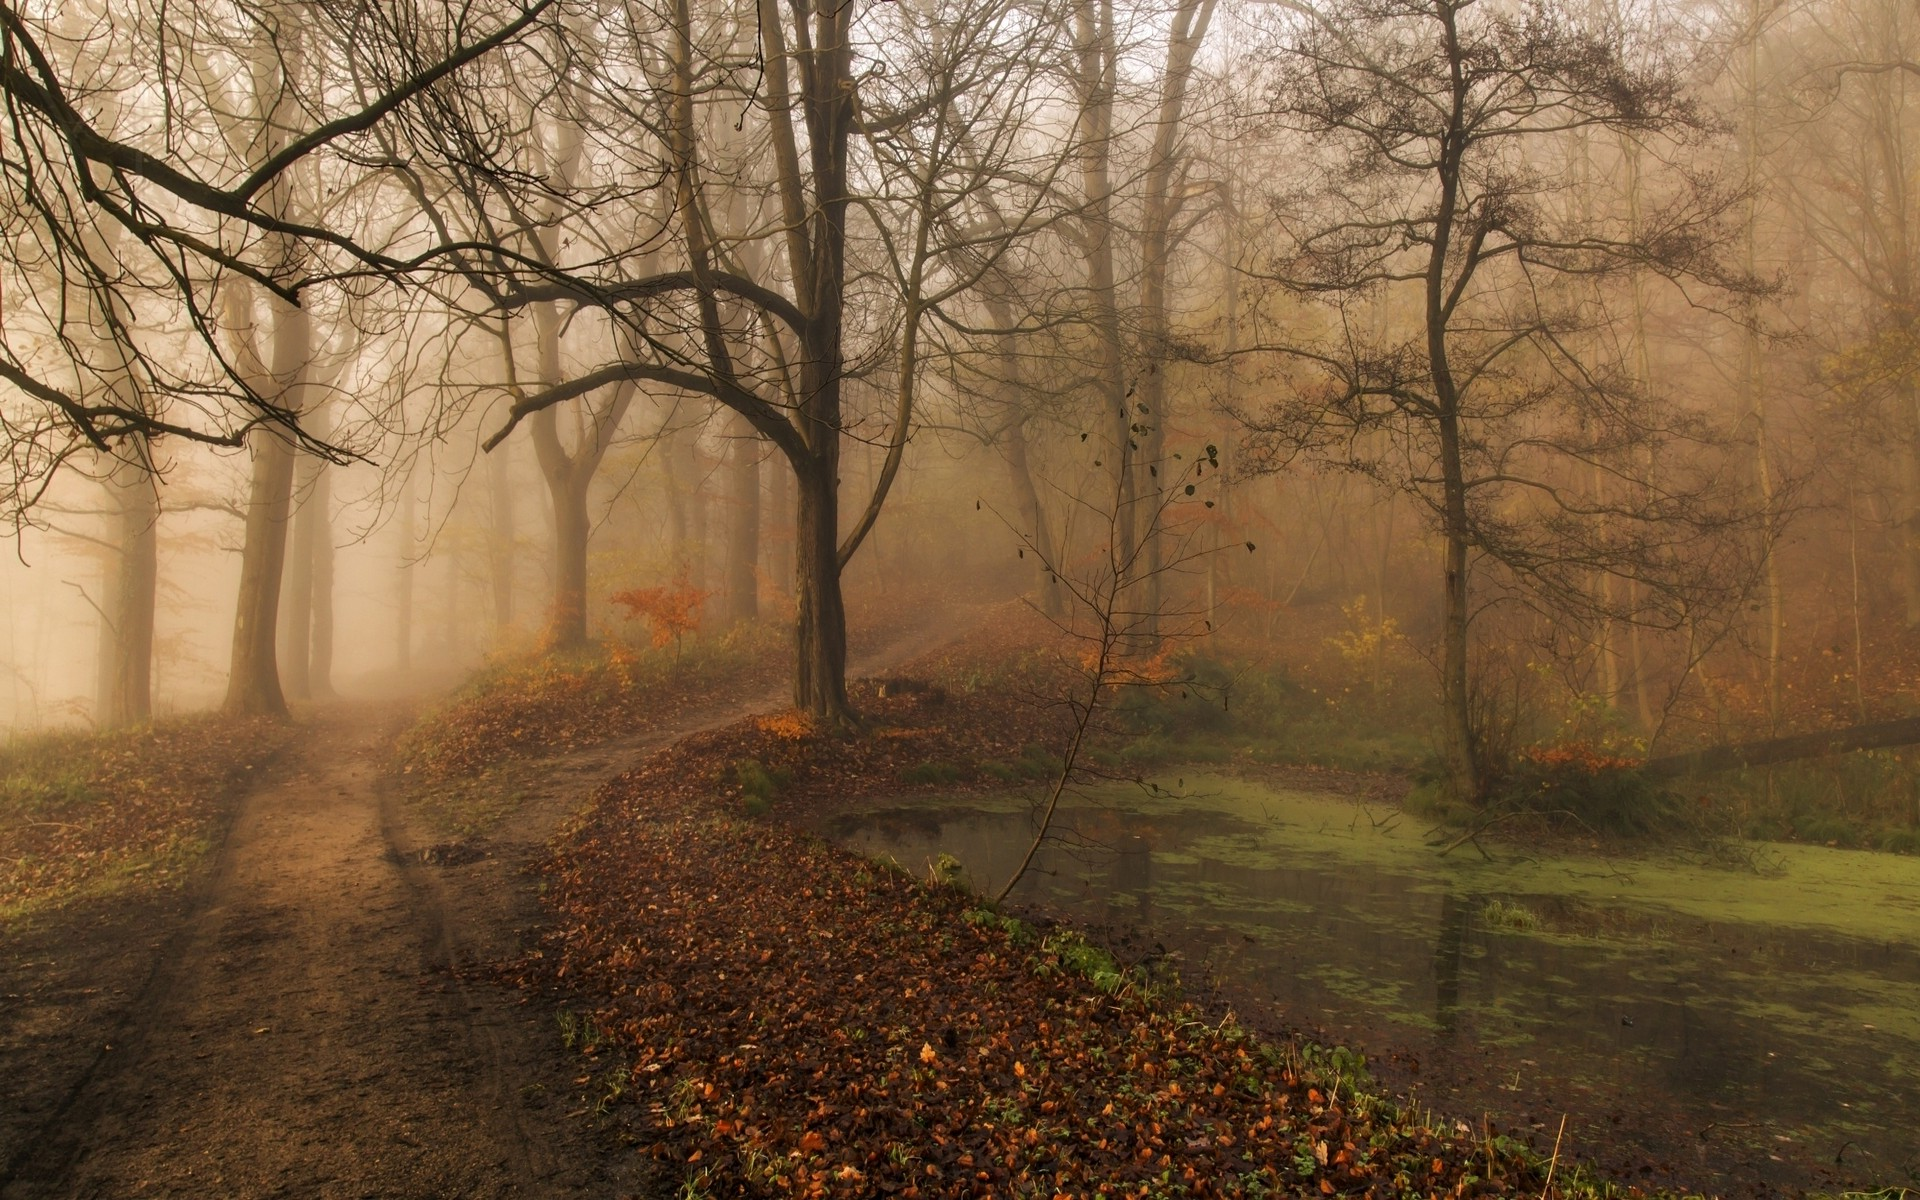 Early Fall Hd Wallpaper Nature Landscape Morning Fall Mist Park Trees Path